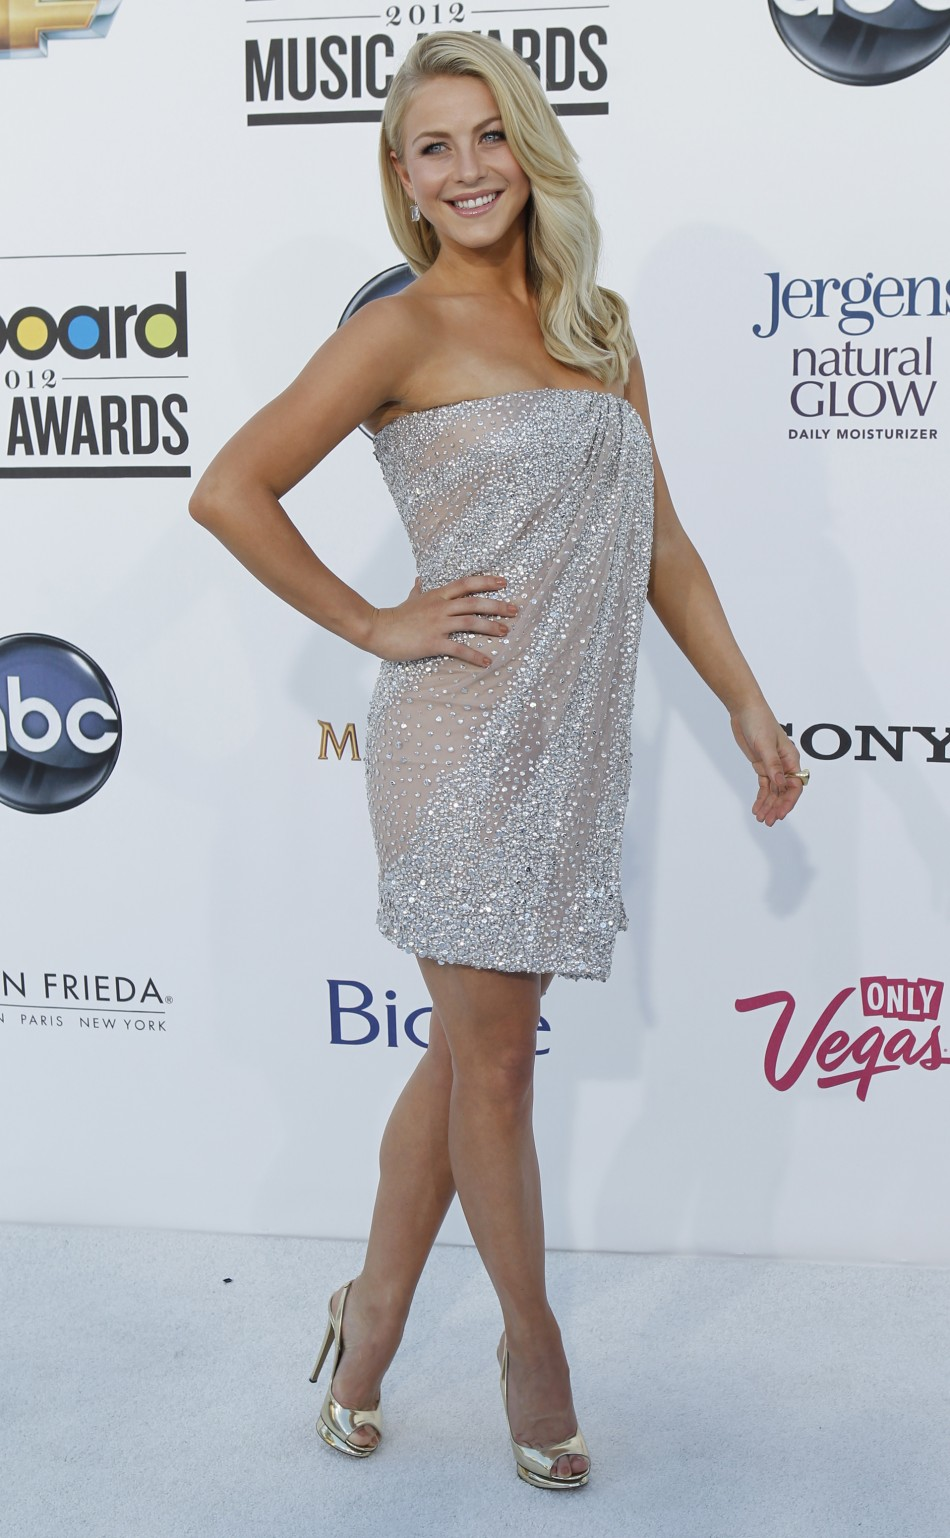 Musician and actress Julianne Hough arrives at the 2012 Billboard Music Awards in Las Vegas